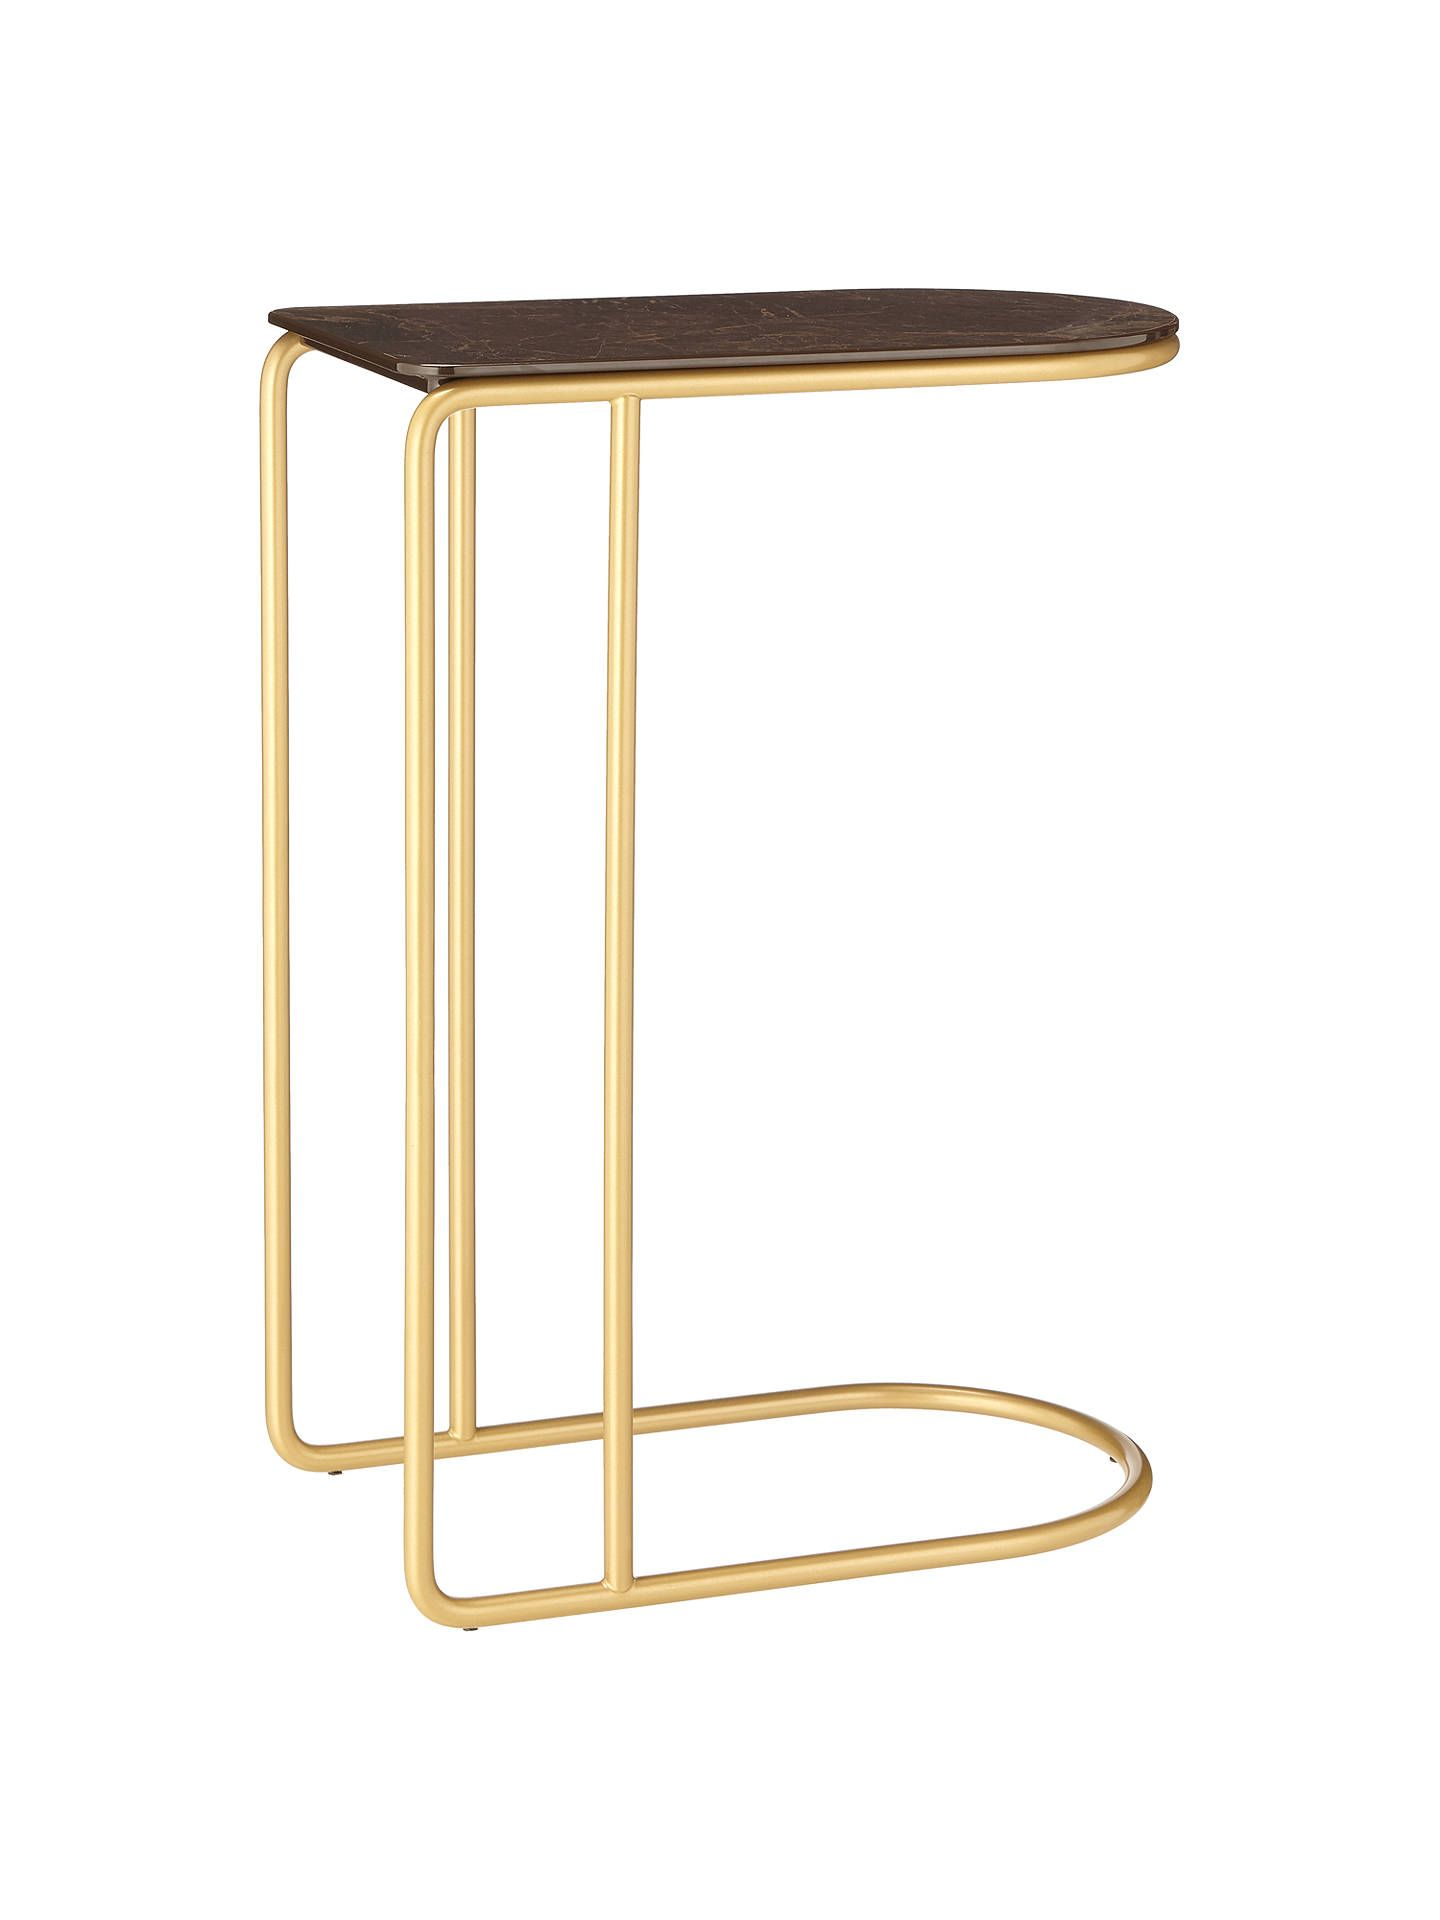 Fabulous John Lewis Partners Esempio Sofa Side Table Lounge Gmtry Best Dining Table And Chair Ideas Images Gmtryco